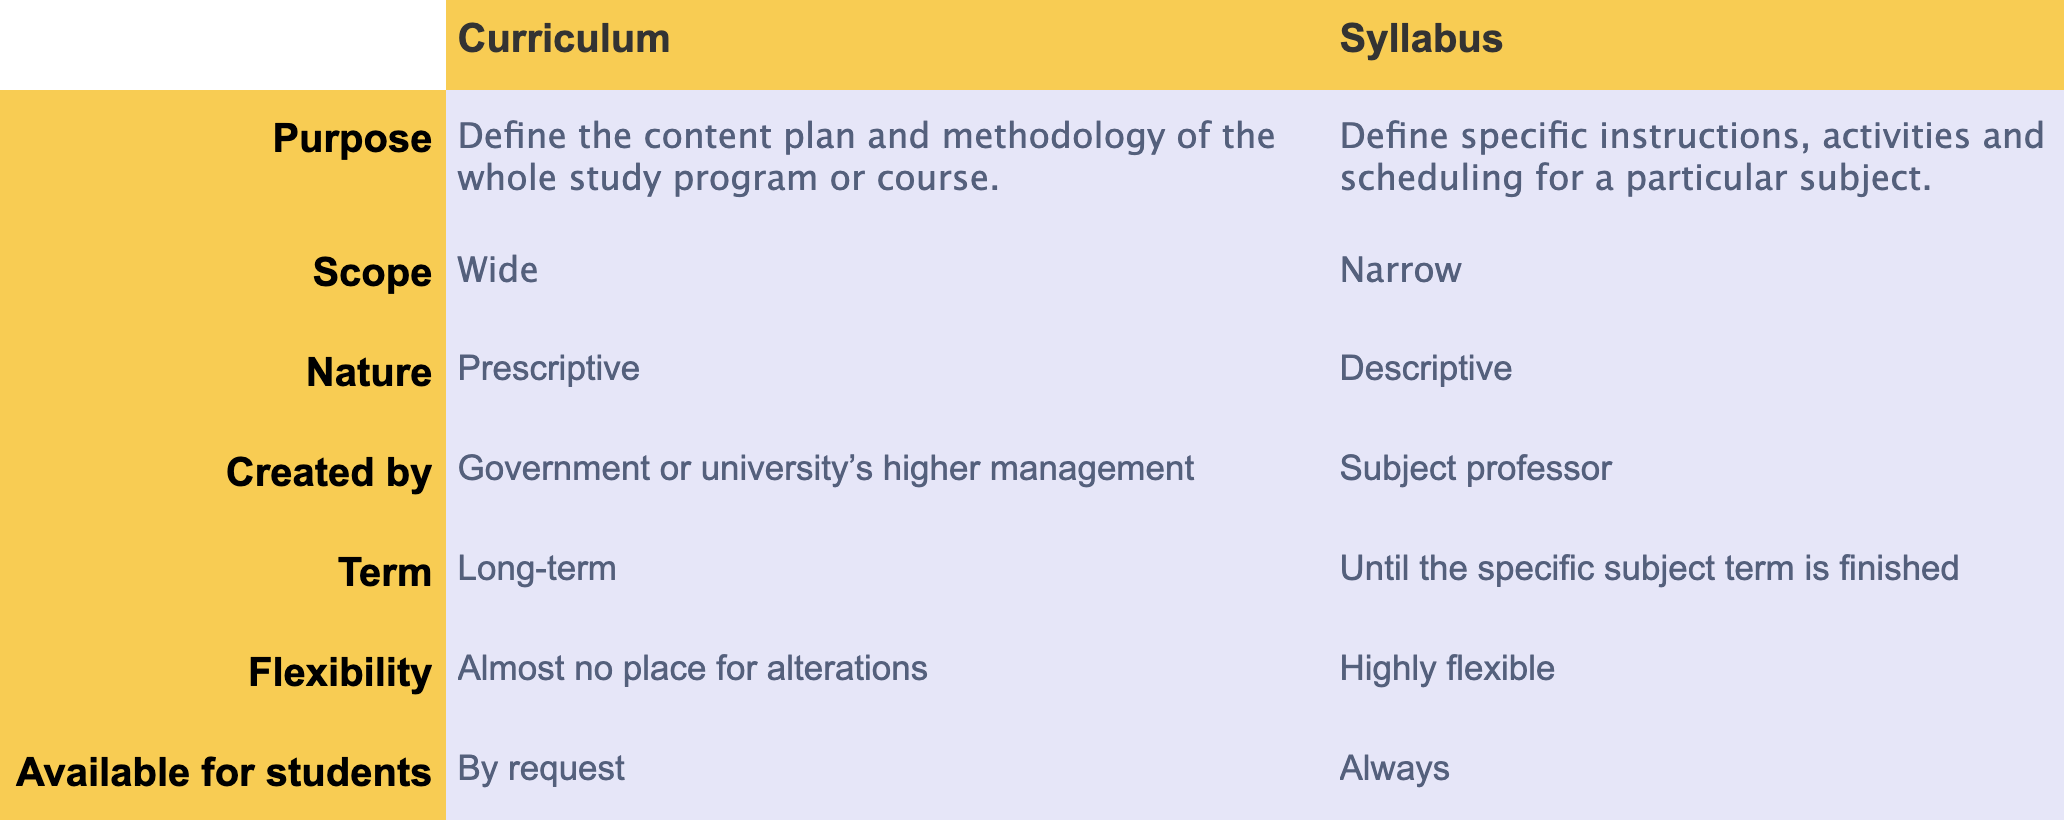 Curriculum and Syllabus: What is the Difference?